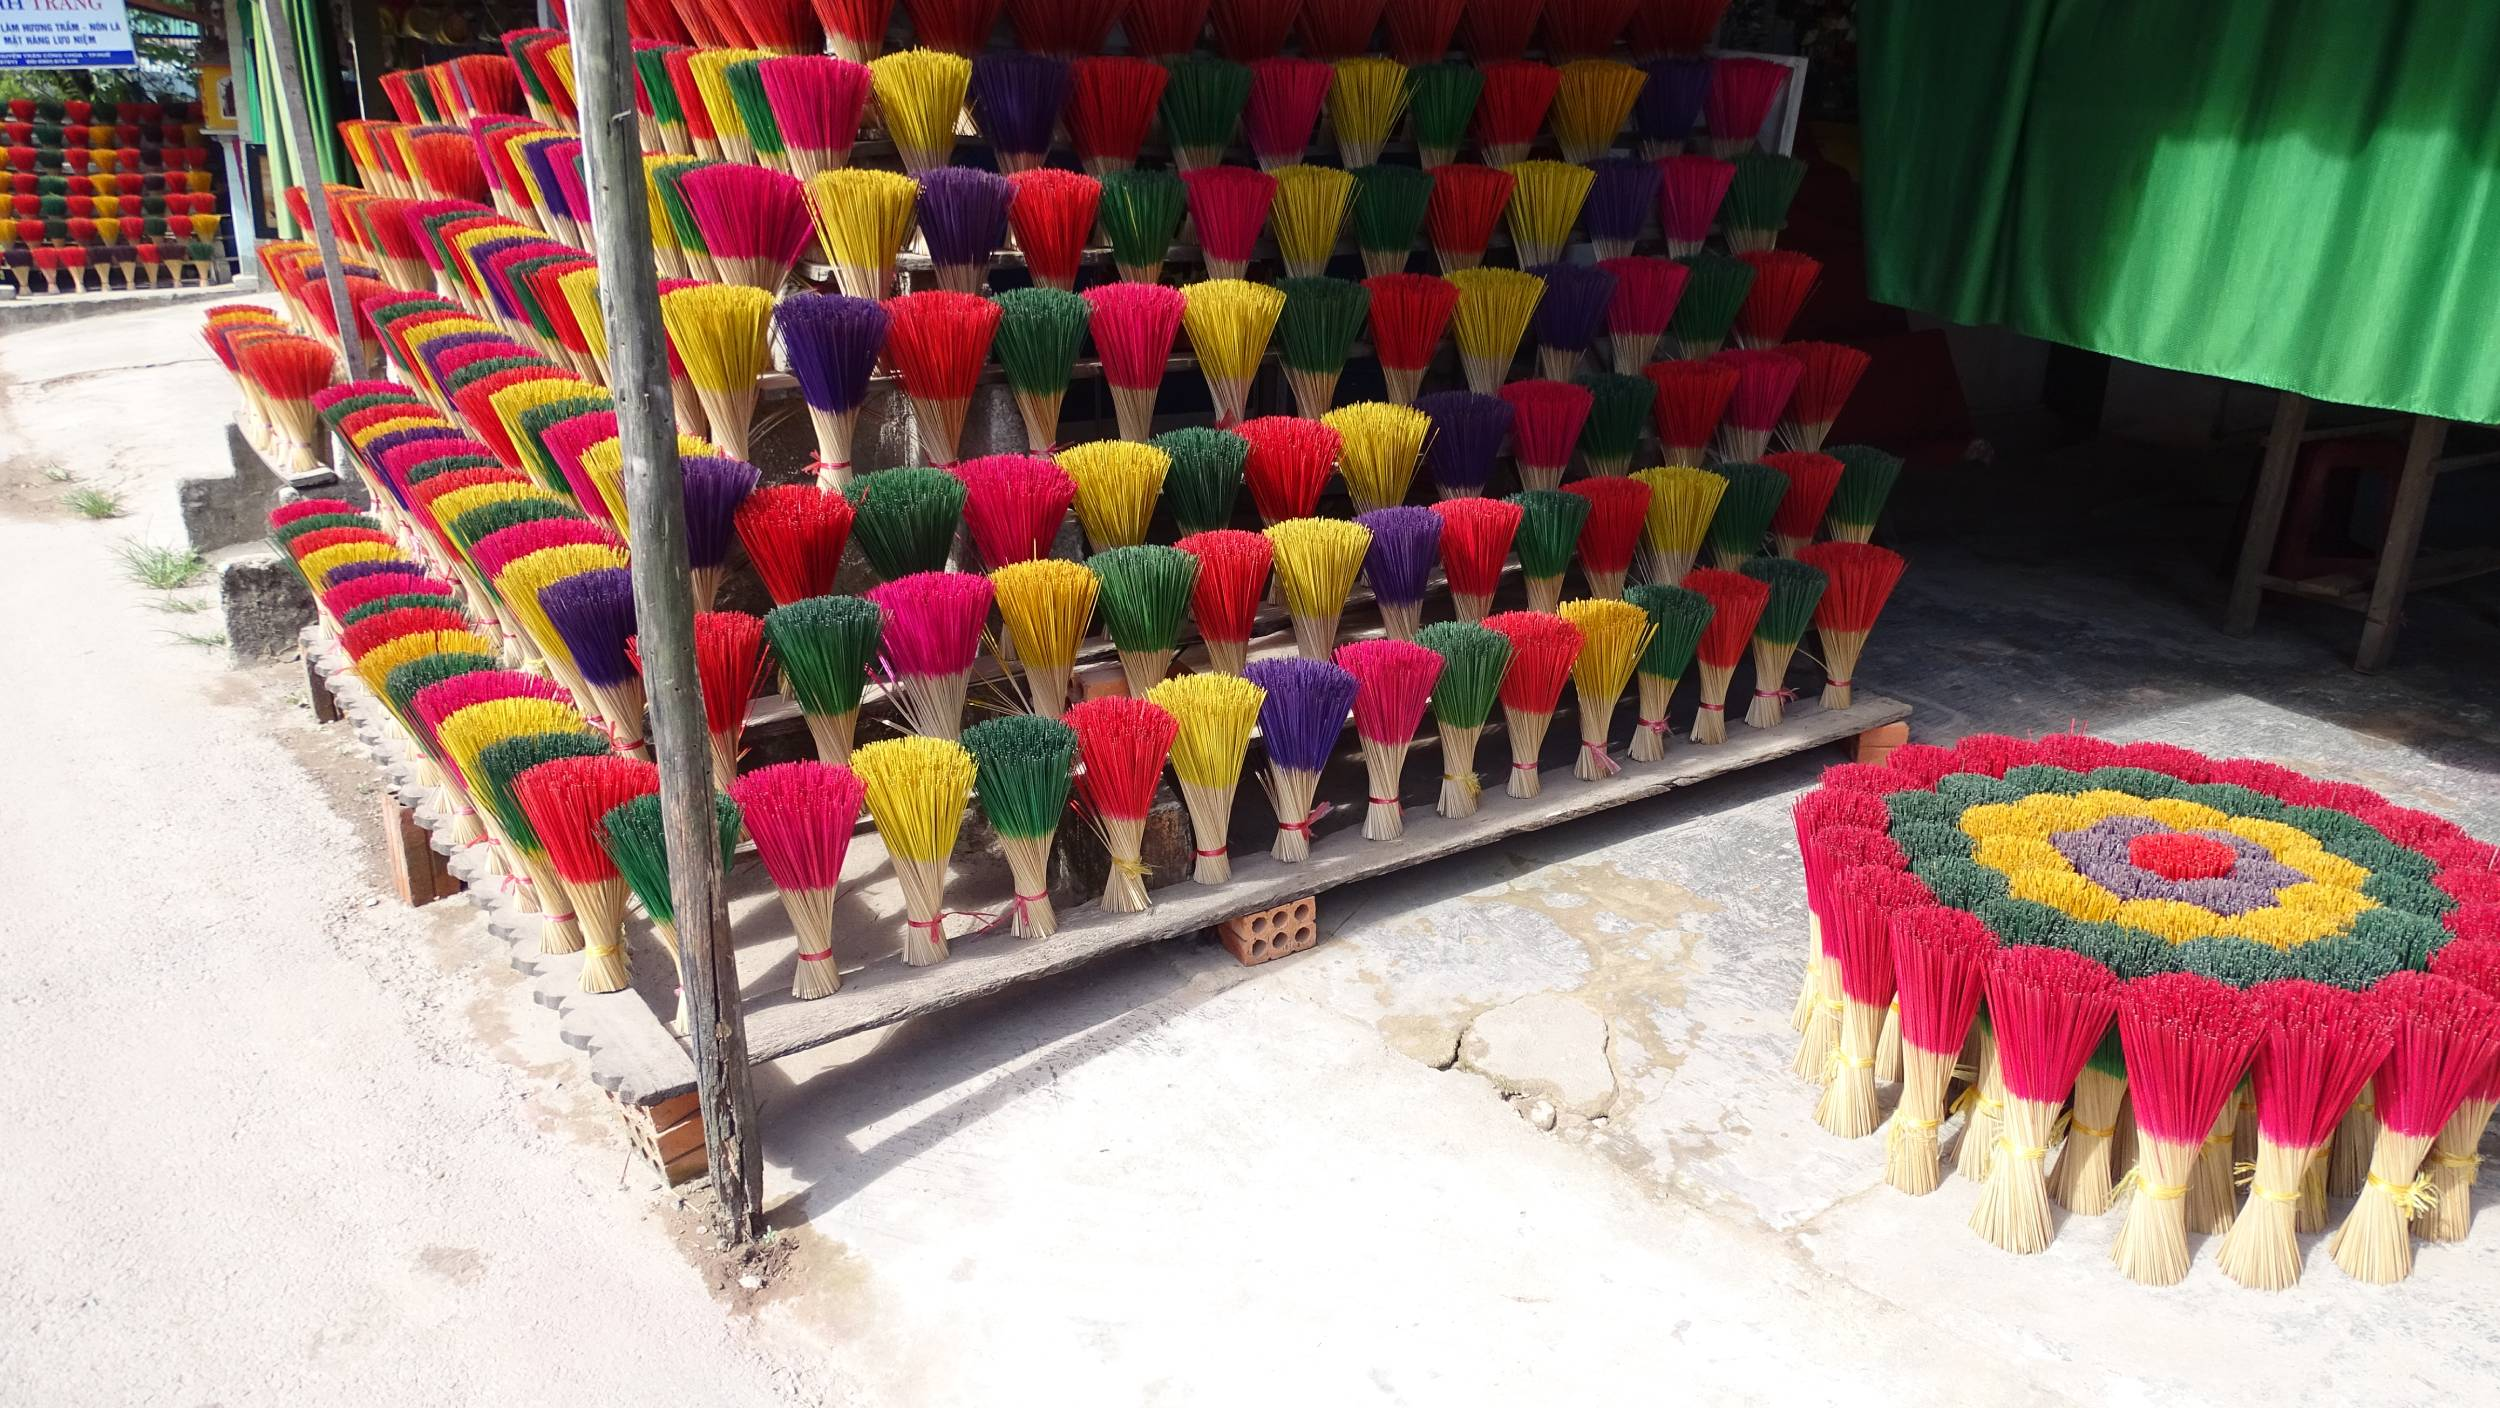 A stall with bundles of colourful incense sticks